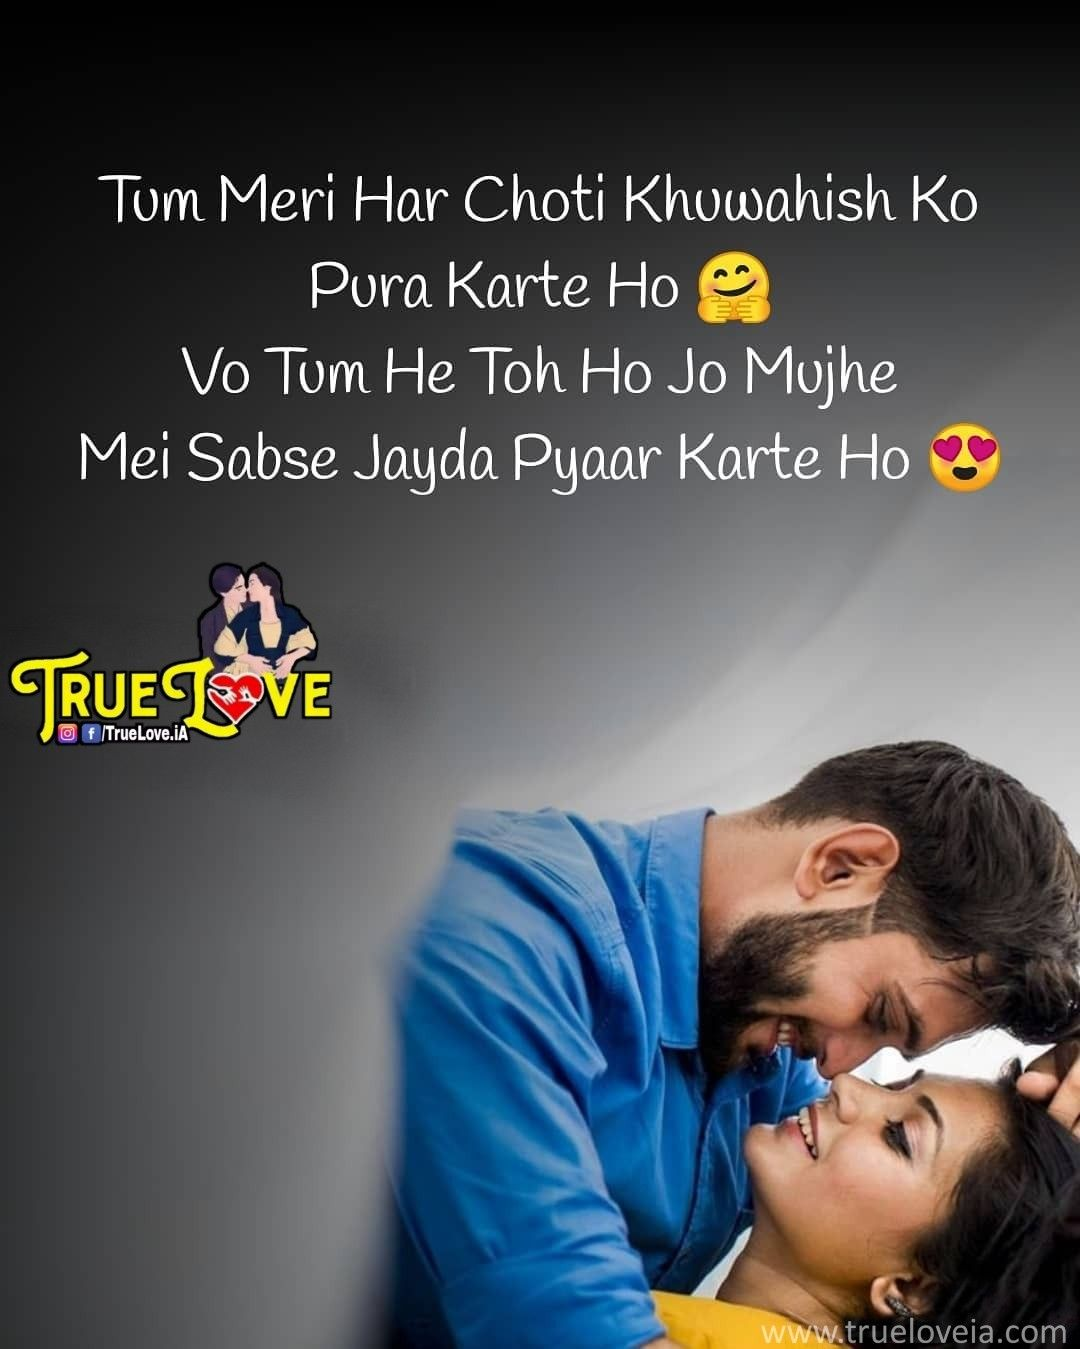 Truelove Truelove Xd Truelove Ia Truelove Truelove Xd Truelove Ia Trueloveia Truelove Truel First Love Quotes Love Quotes In Hindi English Love Quotes